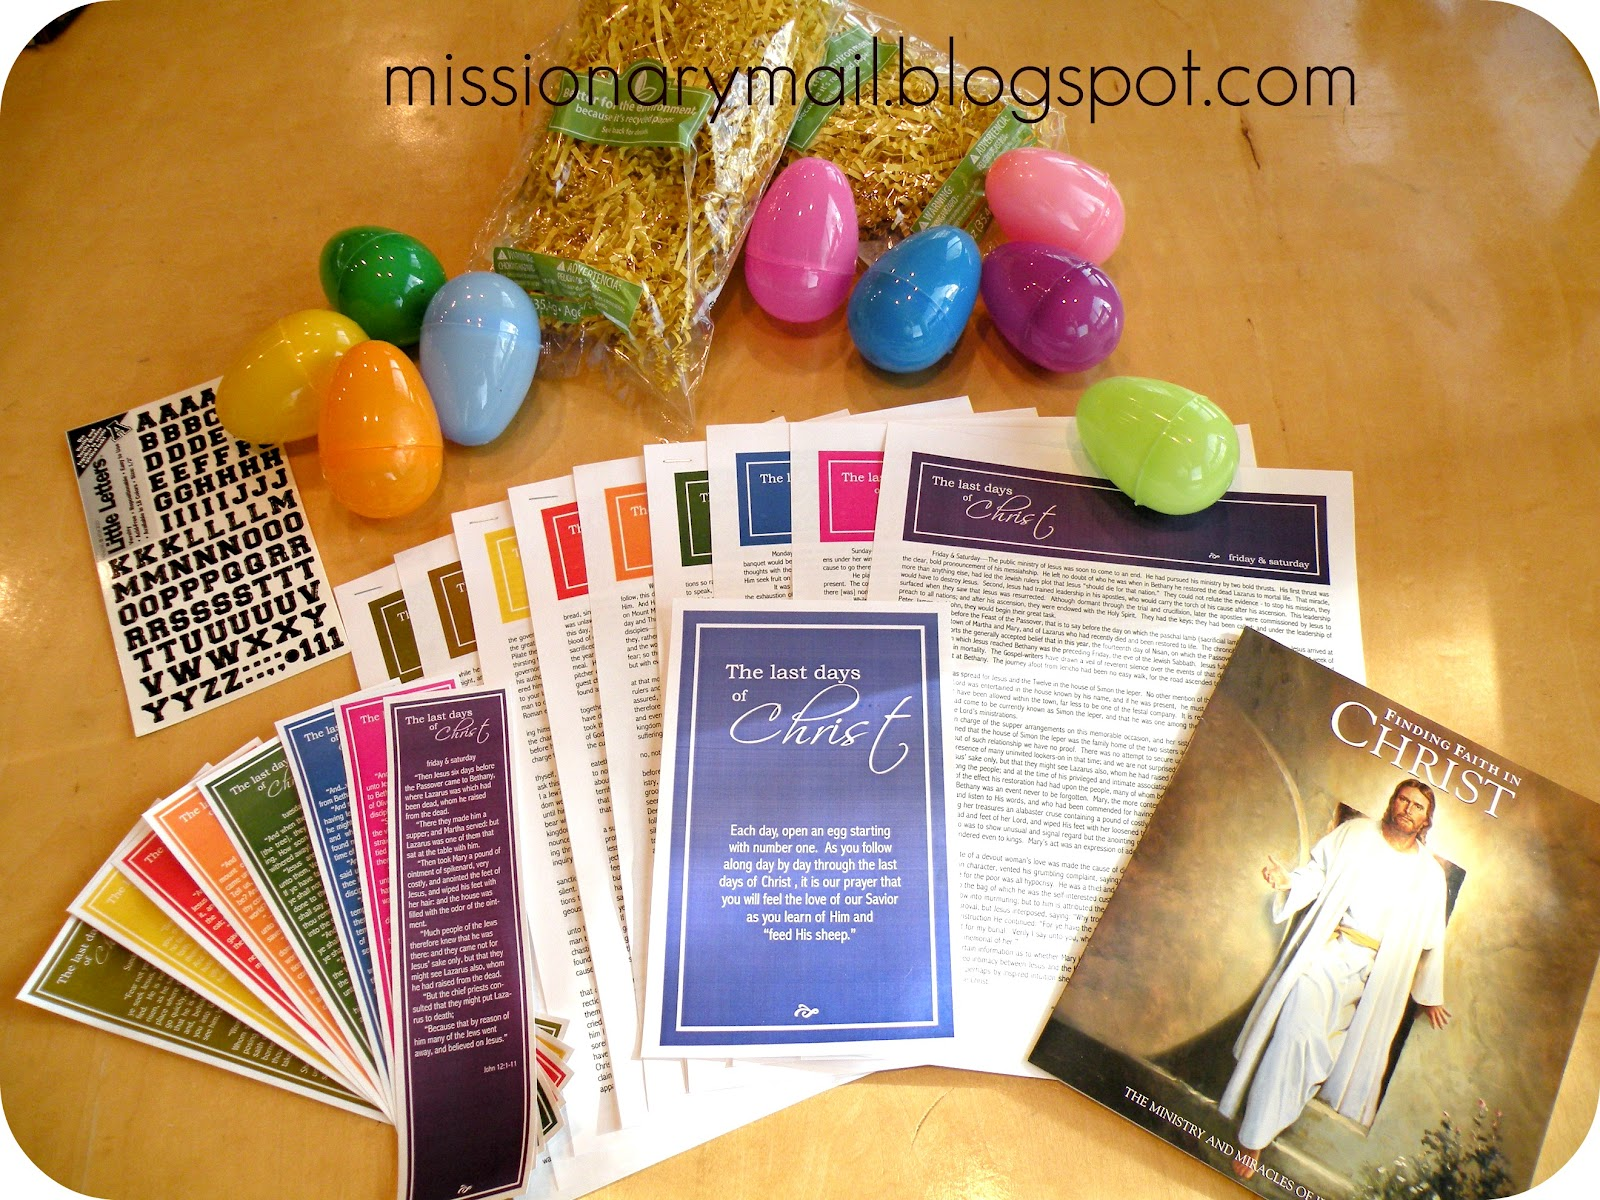 Missionary mail easter the last days of christ i wanted to send our missionaries something that would bring the true meaning of easter into their lives during passion week or the week leading up to negle Images